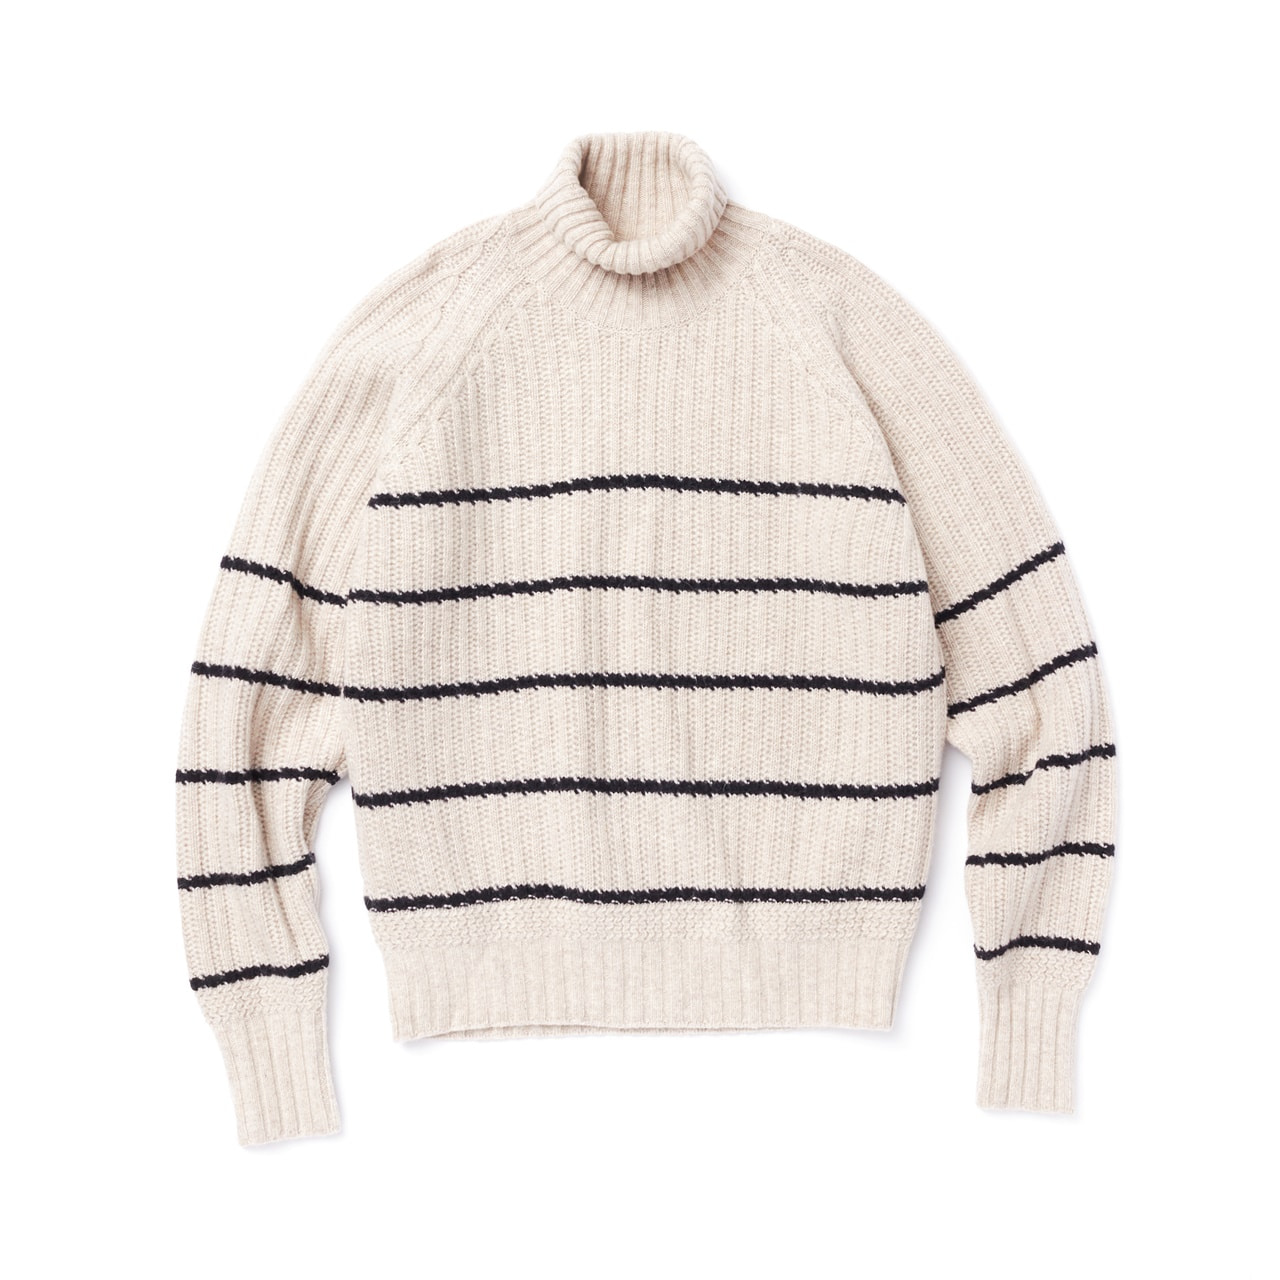 -[AMFEAST] COOKE & CREAM STRIPED FISHERMAN SWEATER